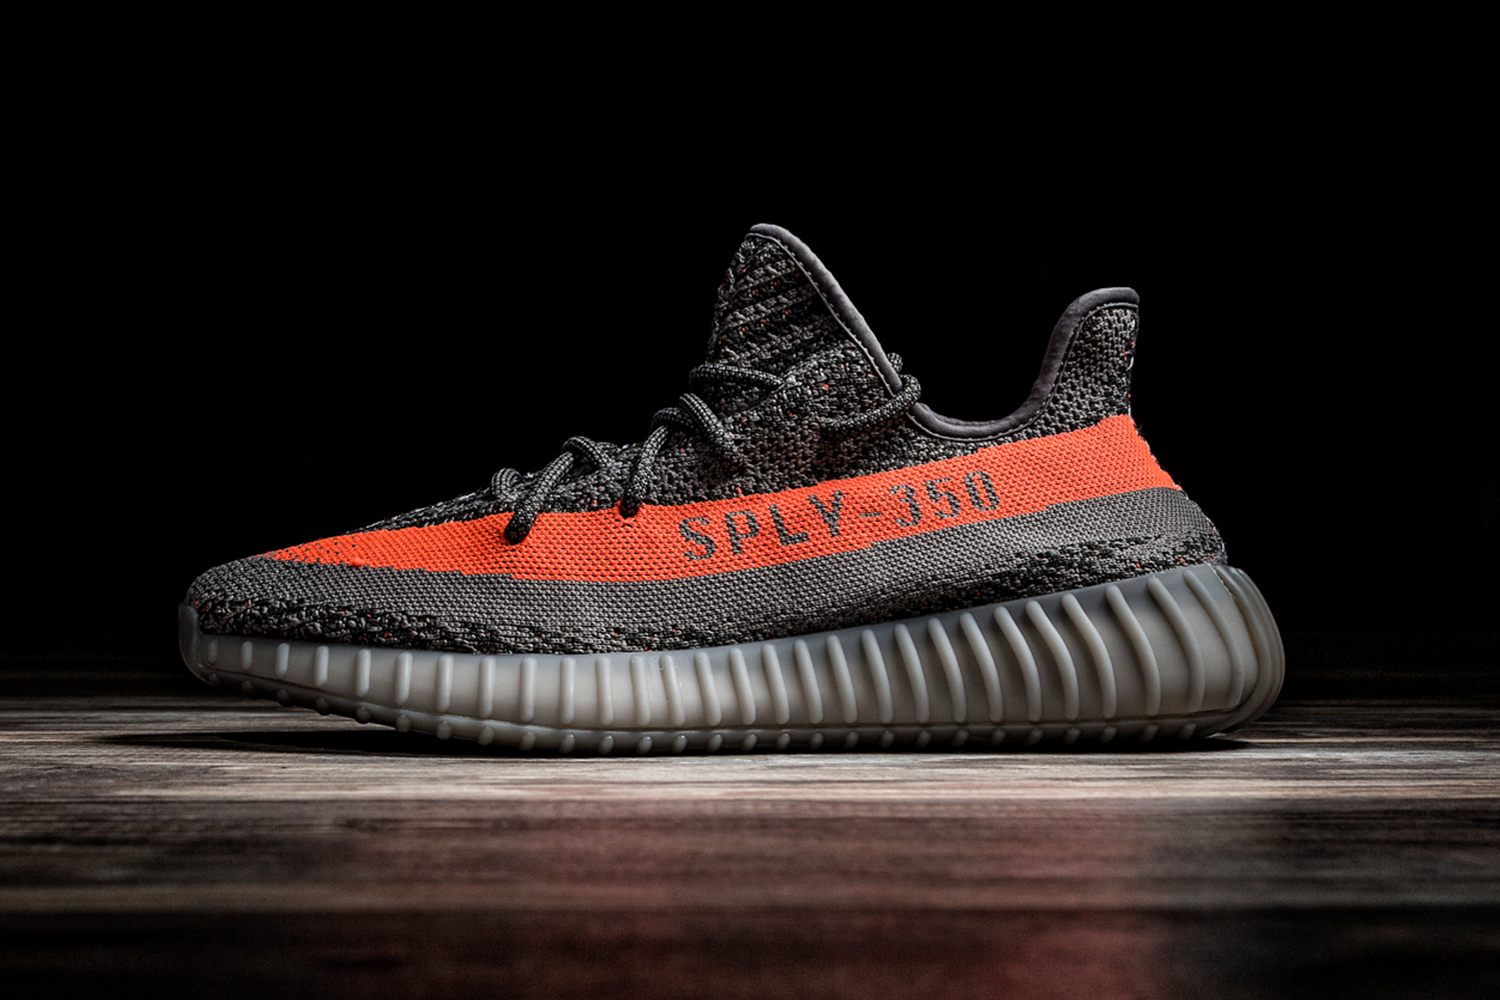 A Closer Look at the adidas Yeezy Boost 350 V2 Kanye west SOLAR RED/STEEPLE GRAY/BELUGA primeknit - 1316987